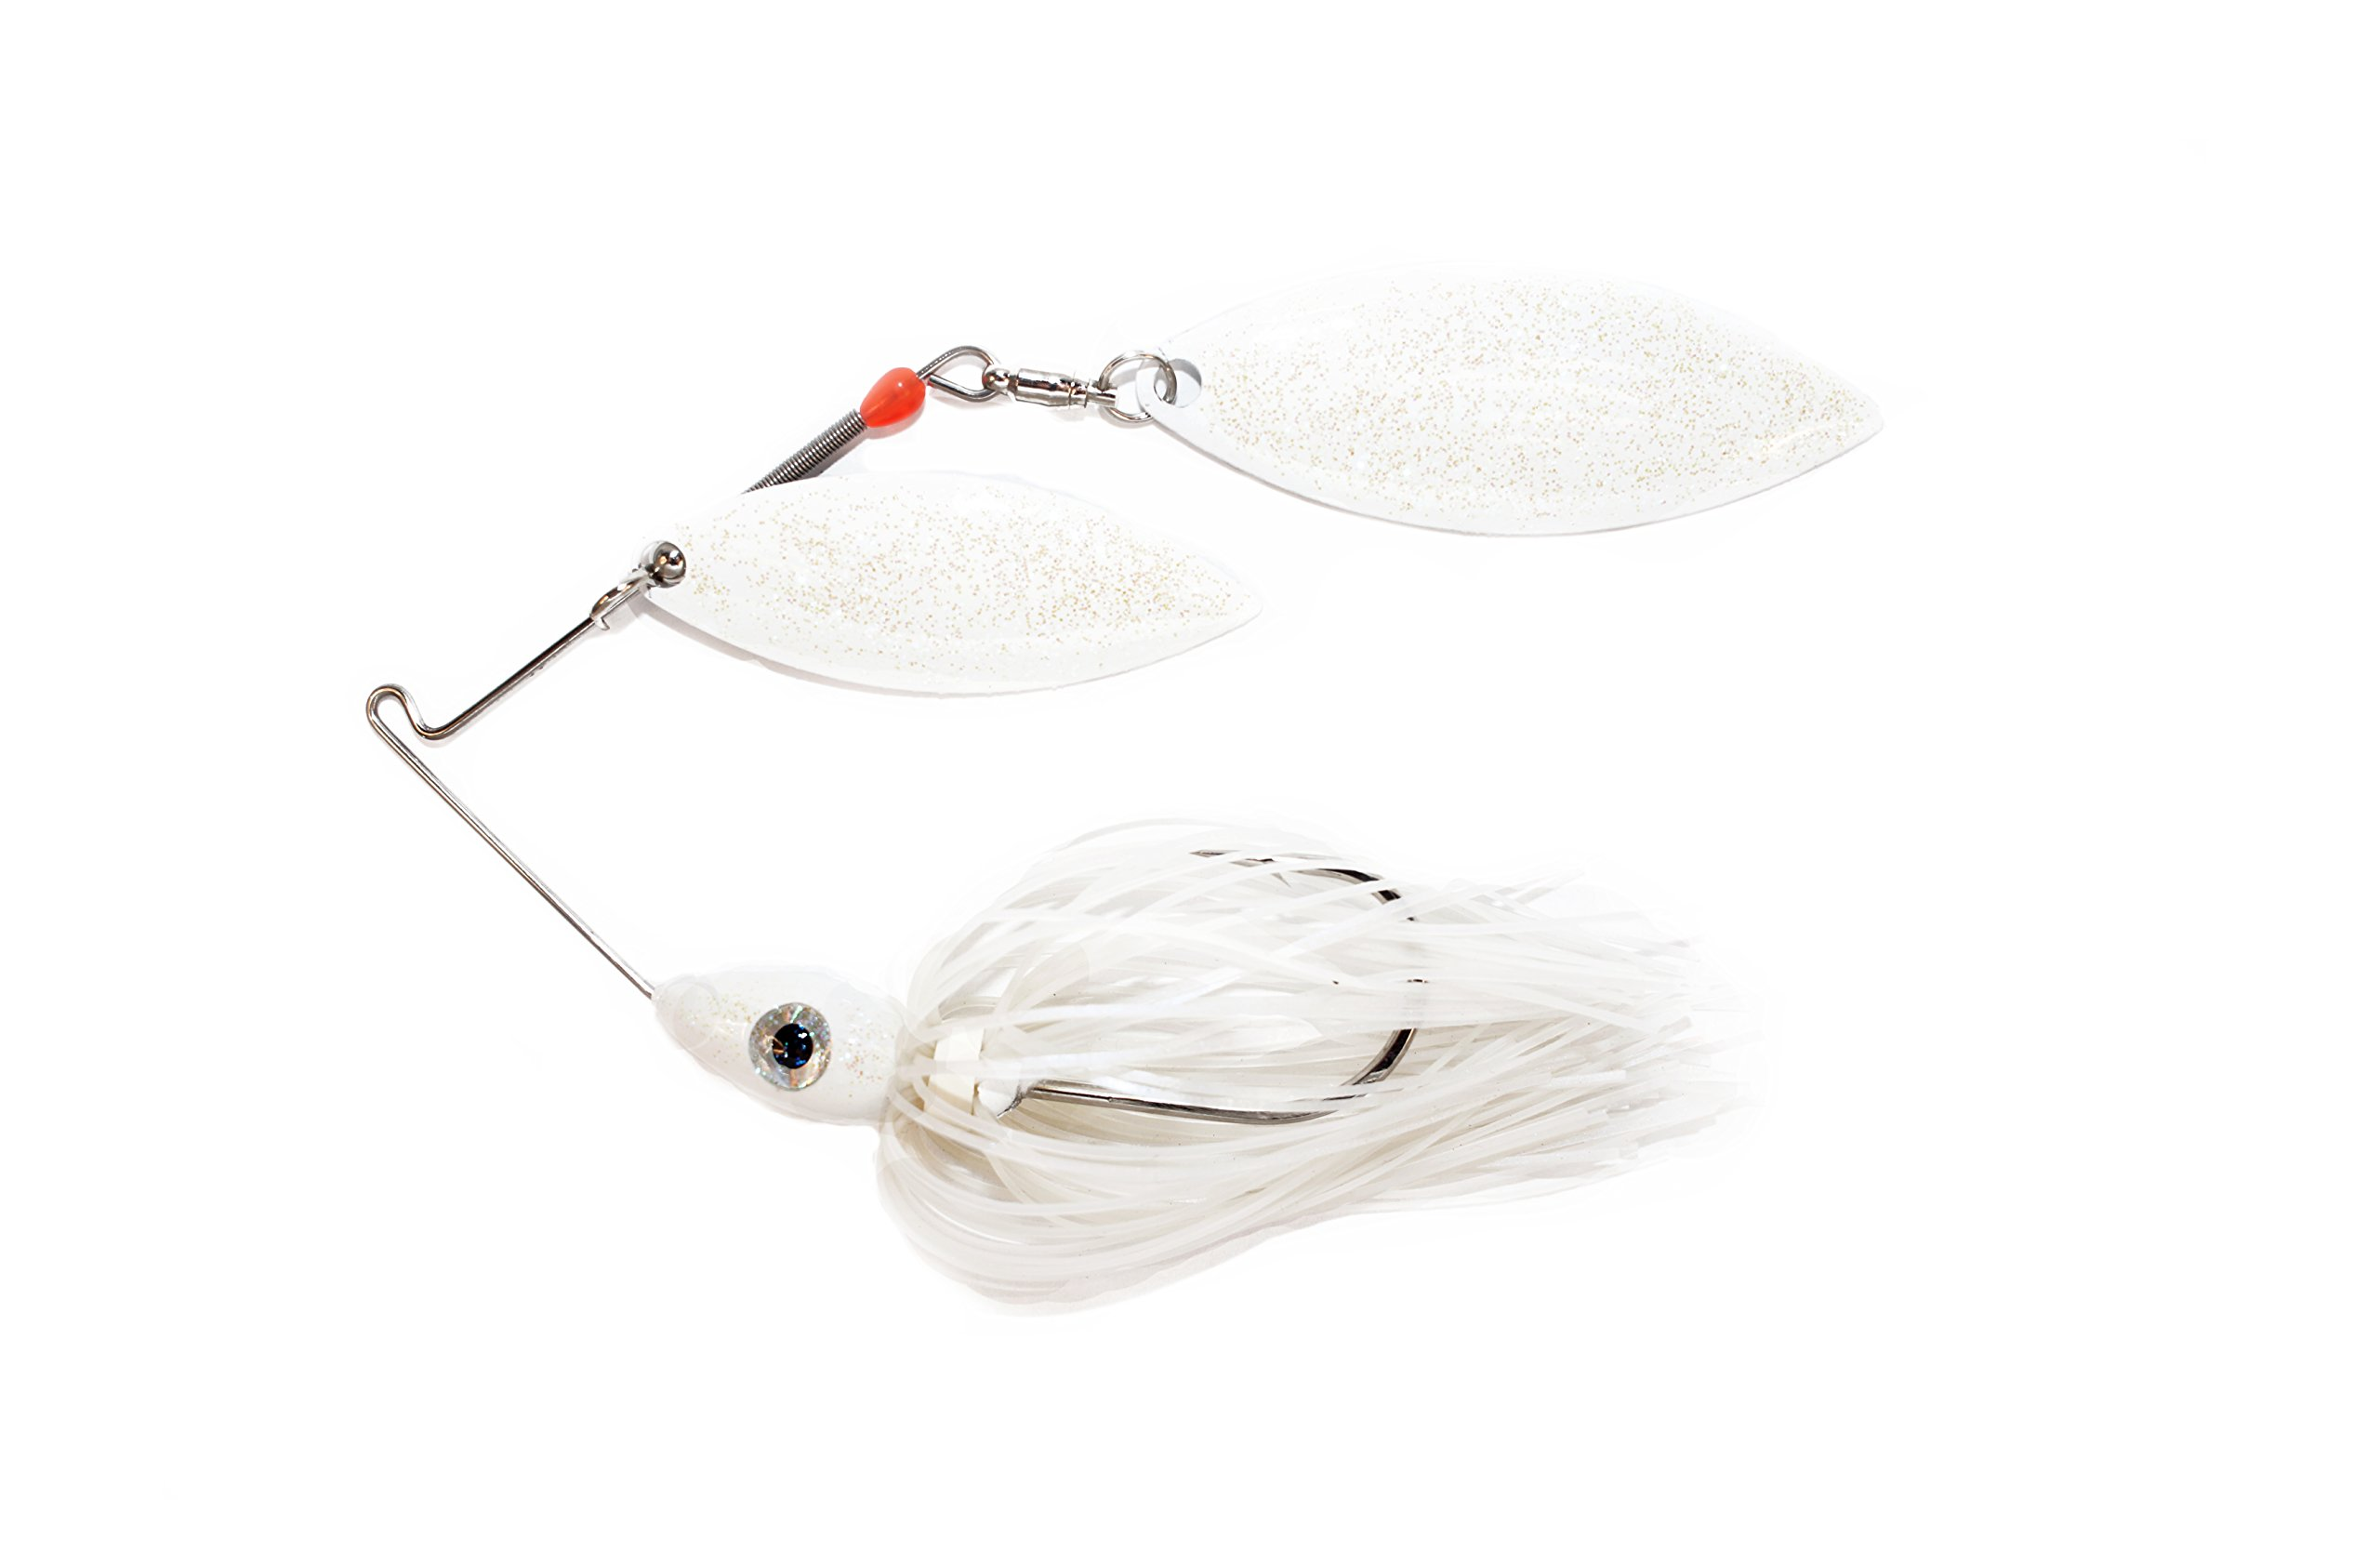 Nichols Lures Pulsator Metal Flake Double Willow Spinnerbait, Blue Shad/White, 3/8-Ounce by Nichols Lures